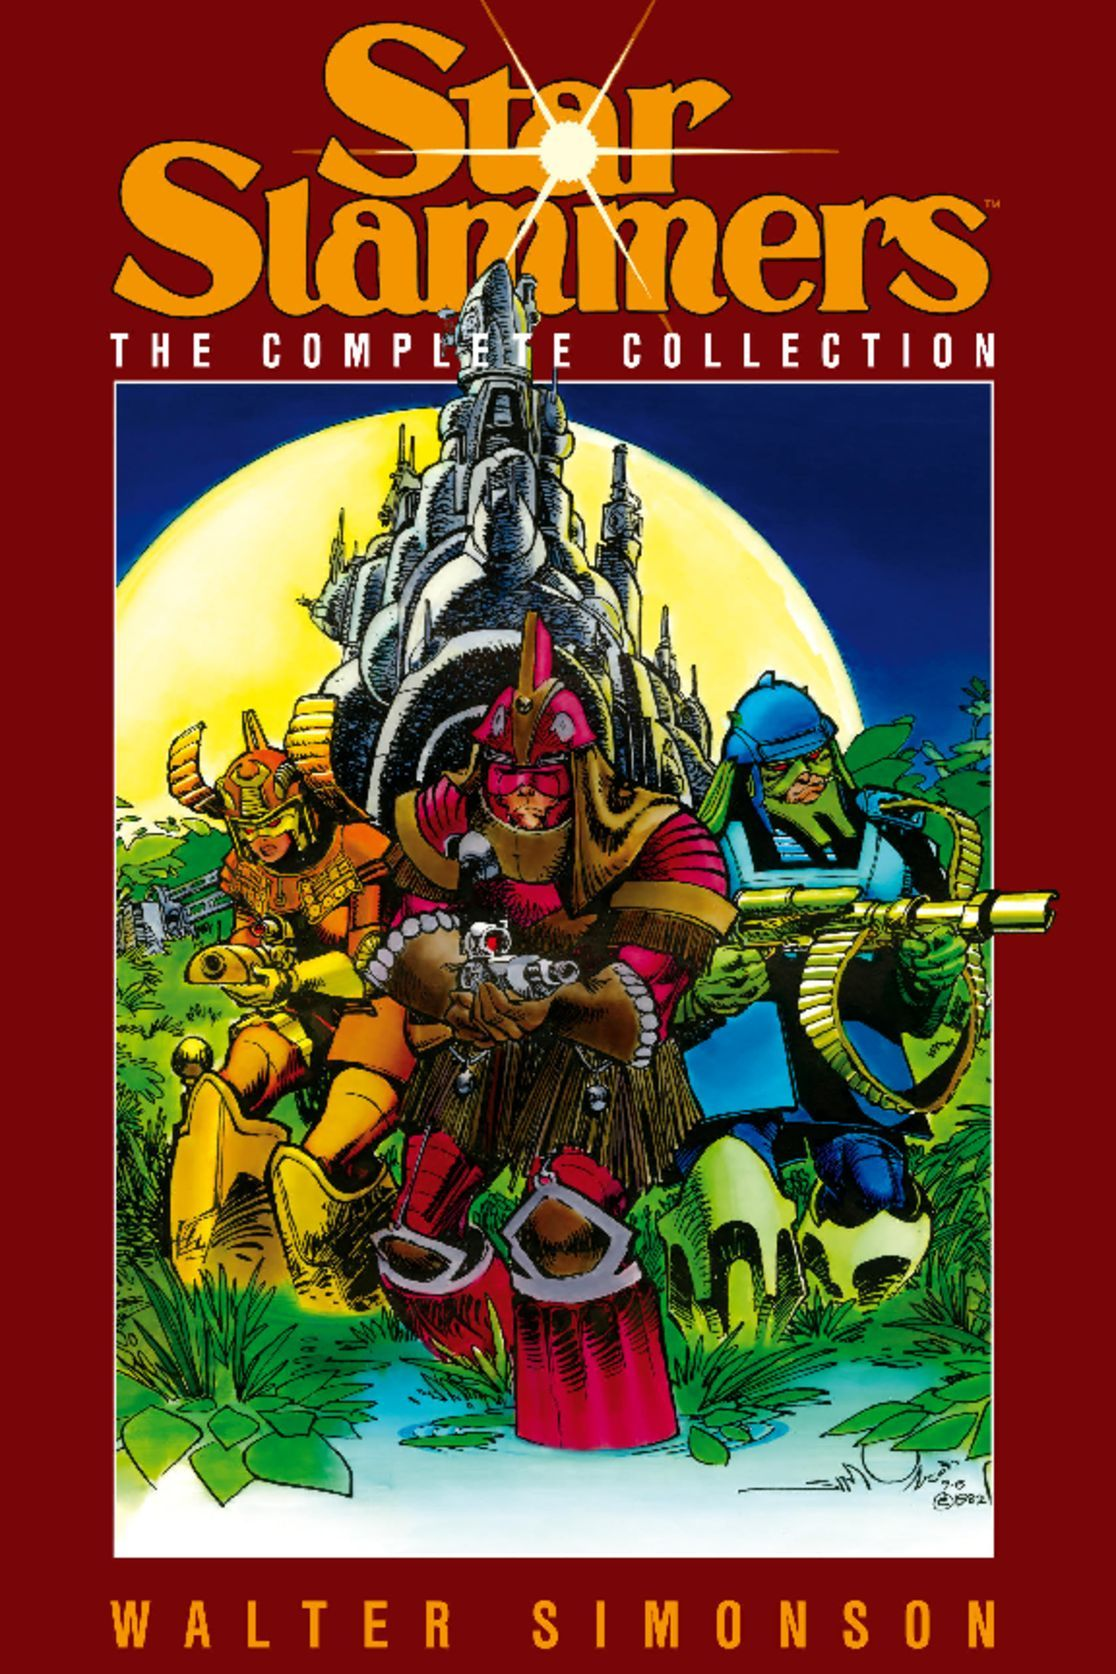 Star Slammers The Complete Collection by Walter Simonson Digital